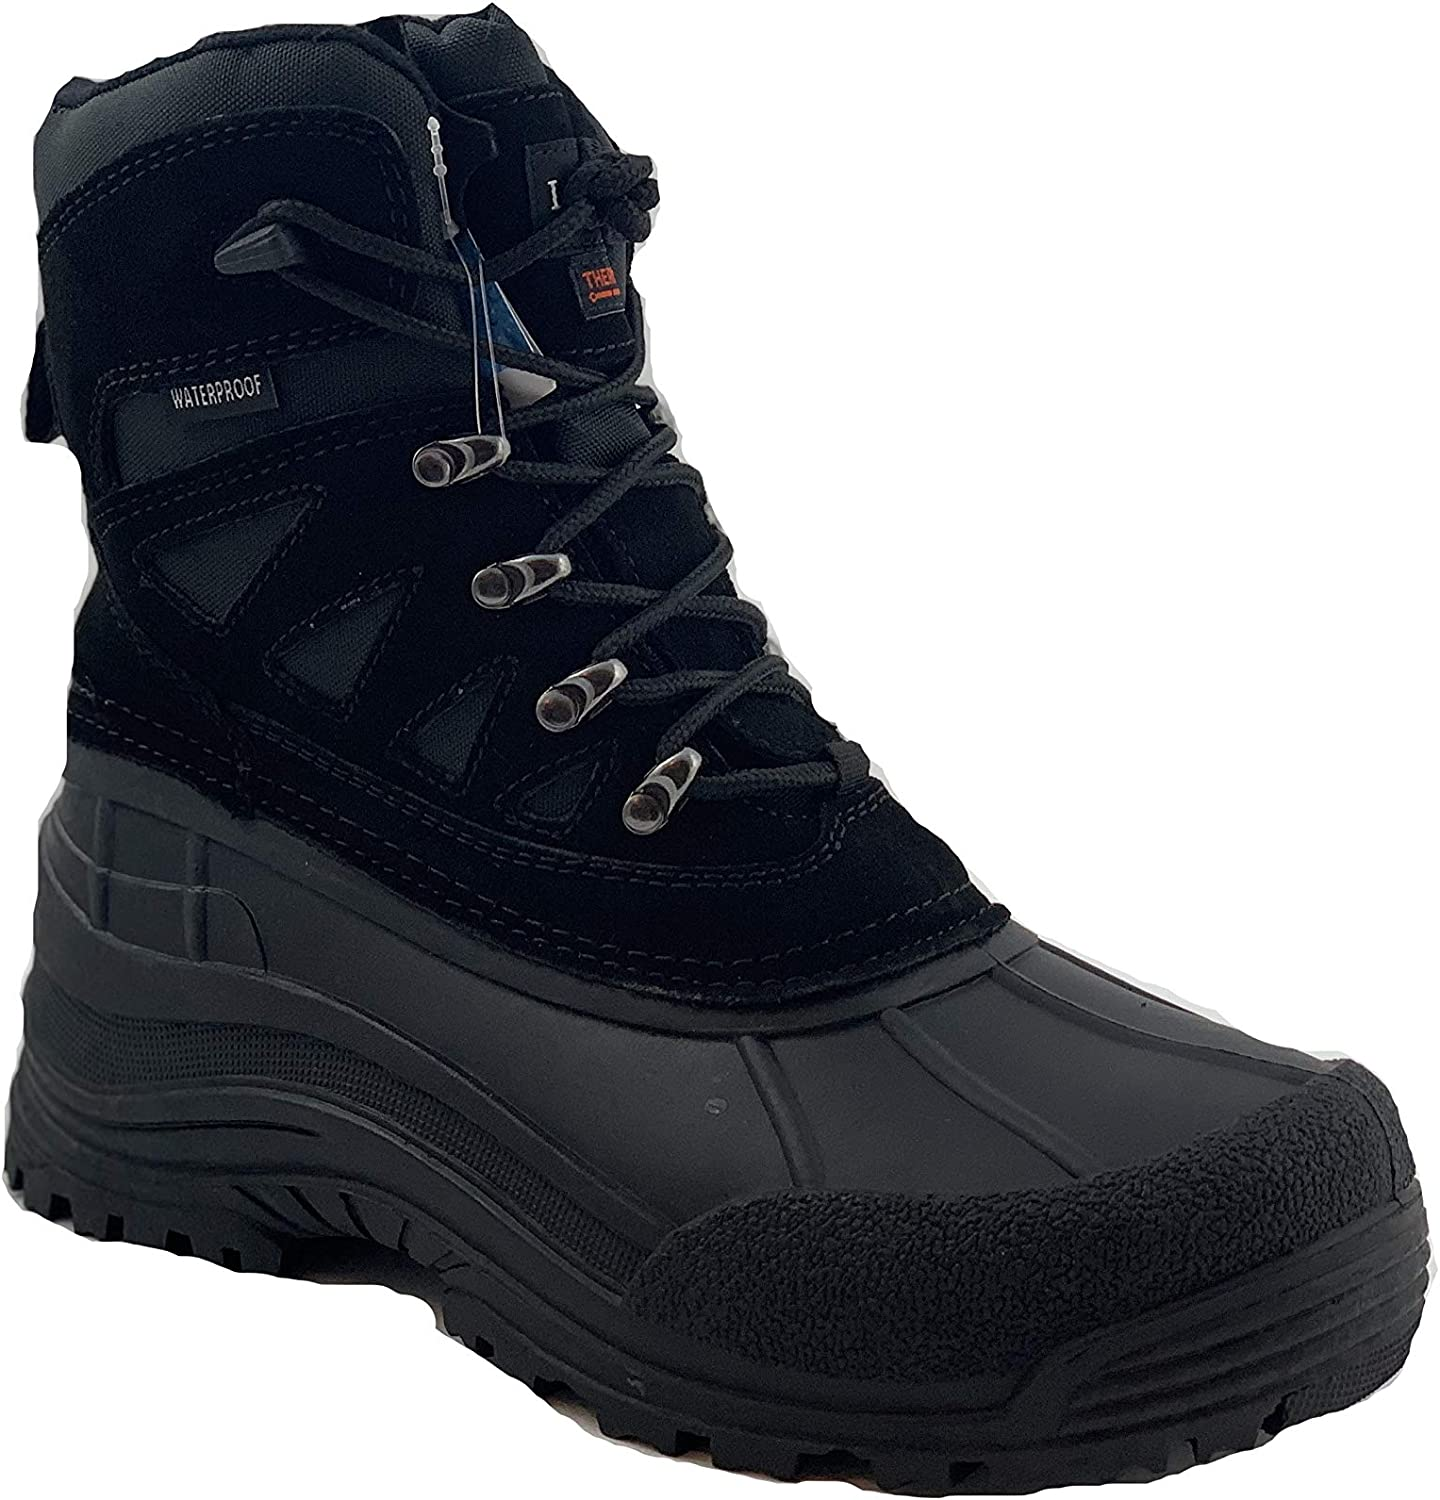 Labo Pro Men's Warm Winter Ranking TOP20 Max 57% OFF Insulated Shoes Waterproof Boots Snow